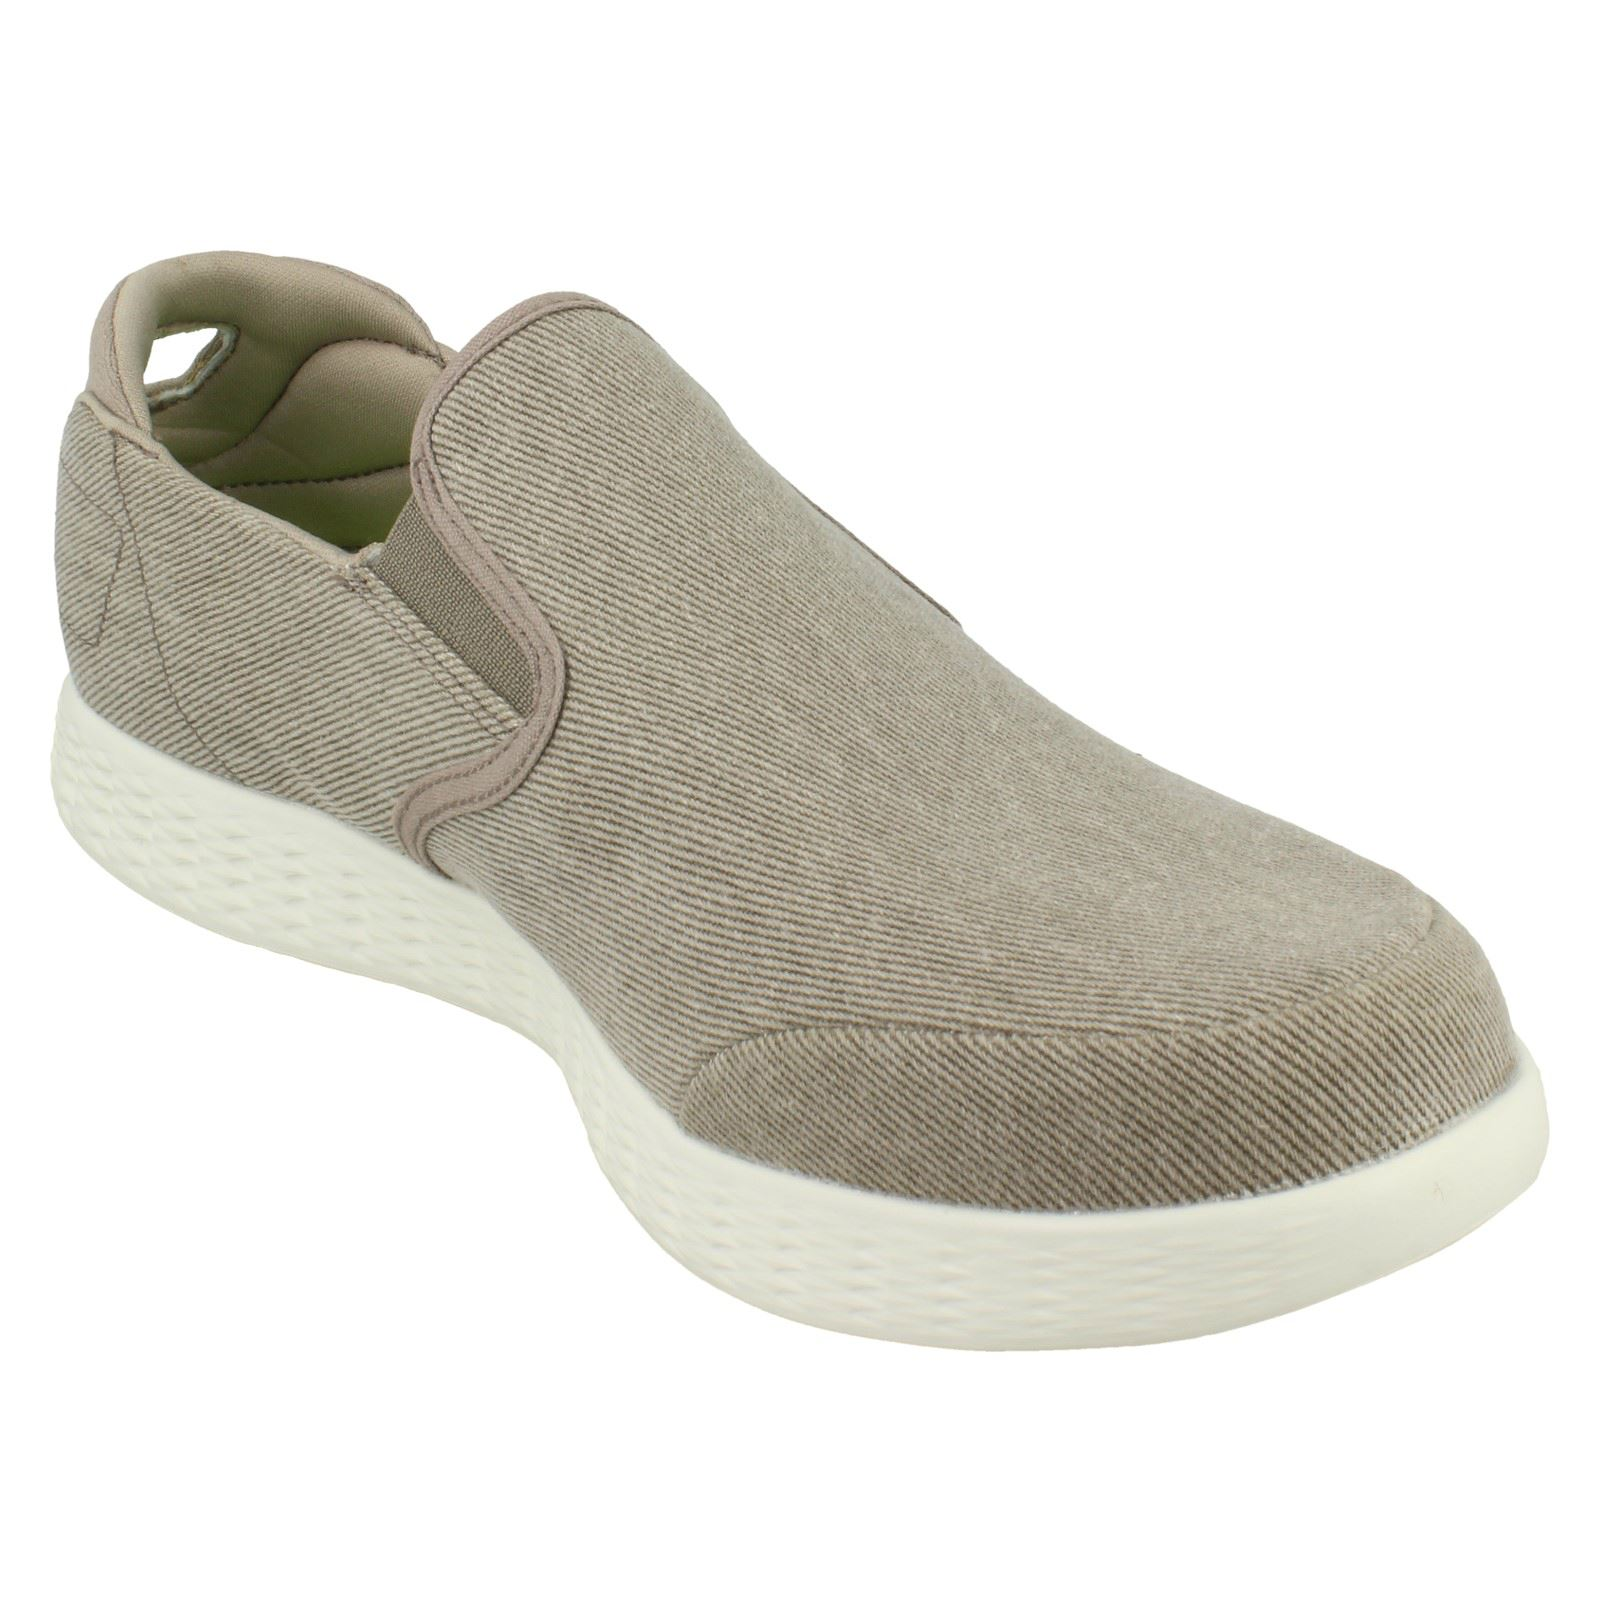 Men-Skechers-On-The-Go-Glide-Victorious-53781-Trainers thumbnail 6